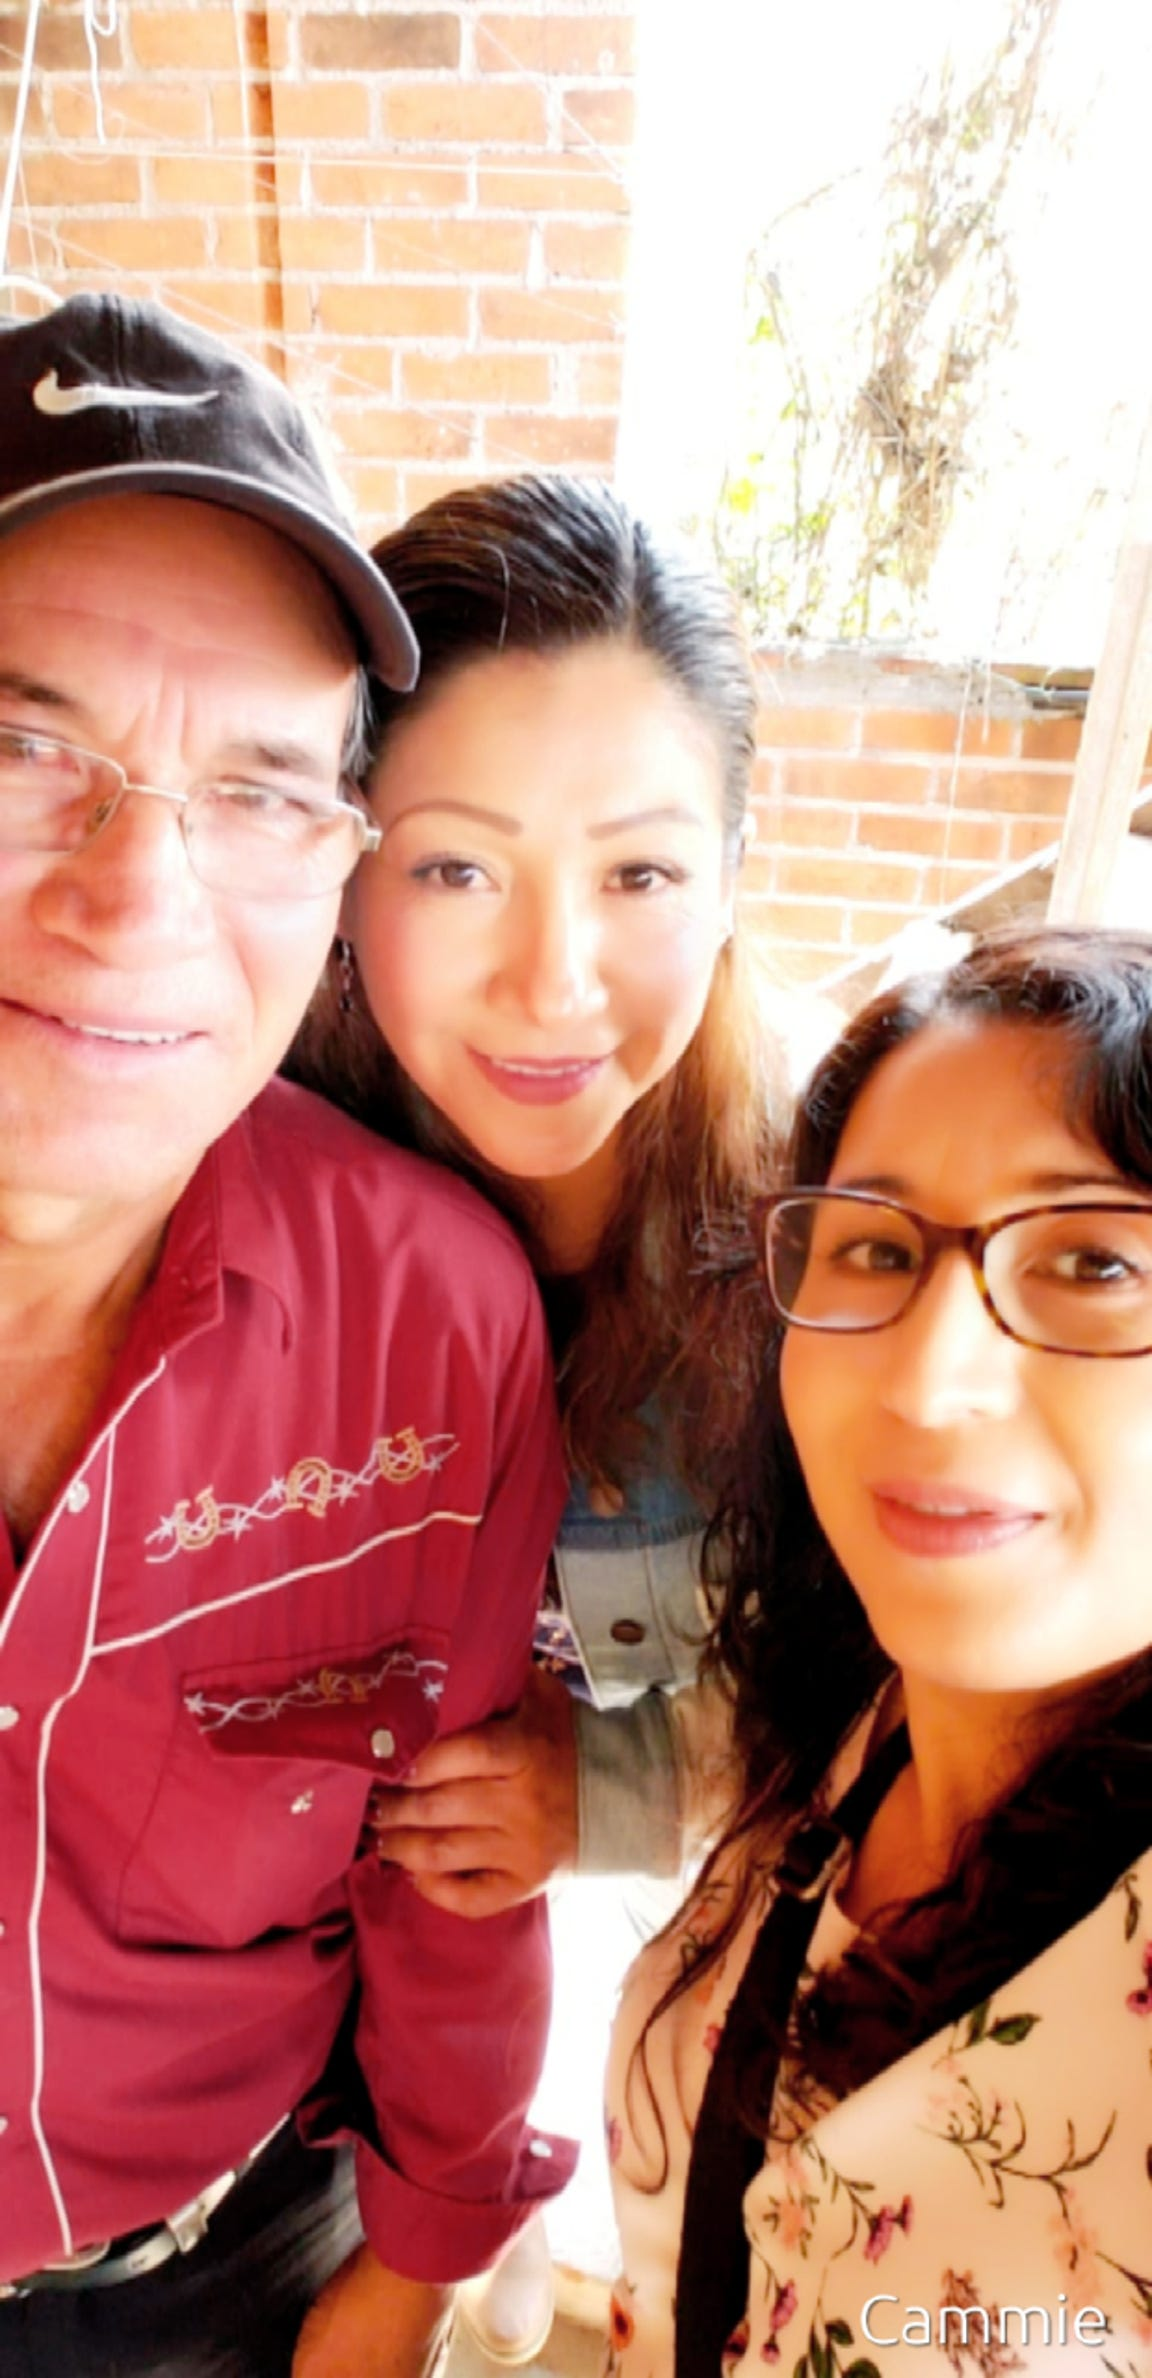 María Ramírez, center, with her father, Gabriel Ramírez, and her sister, María de la Luz.